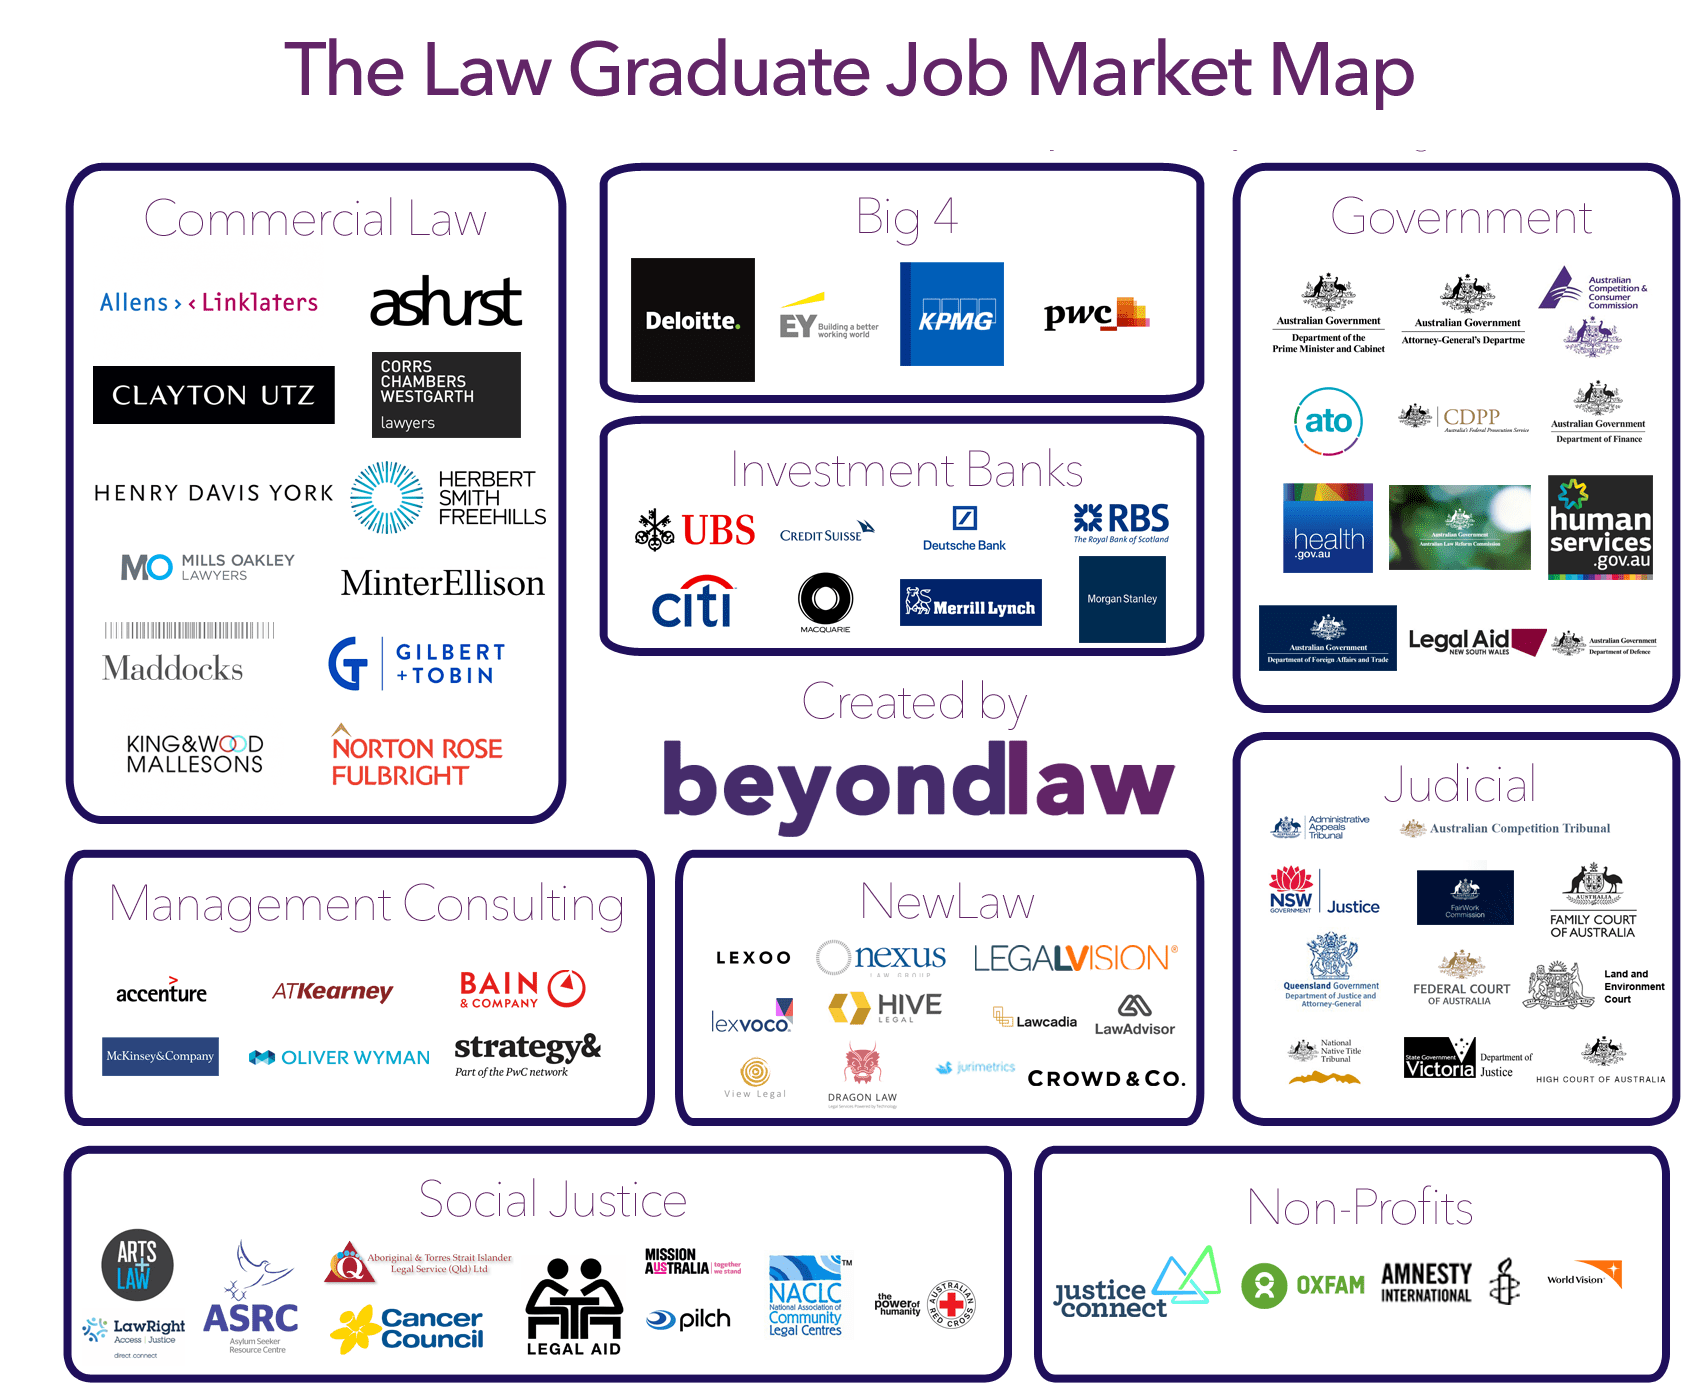 The Law Graduate Job Market Map